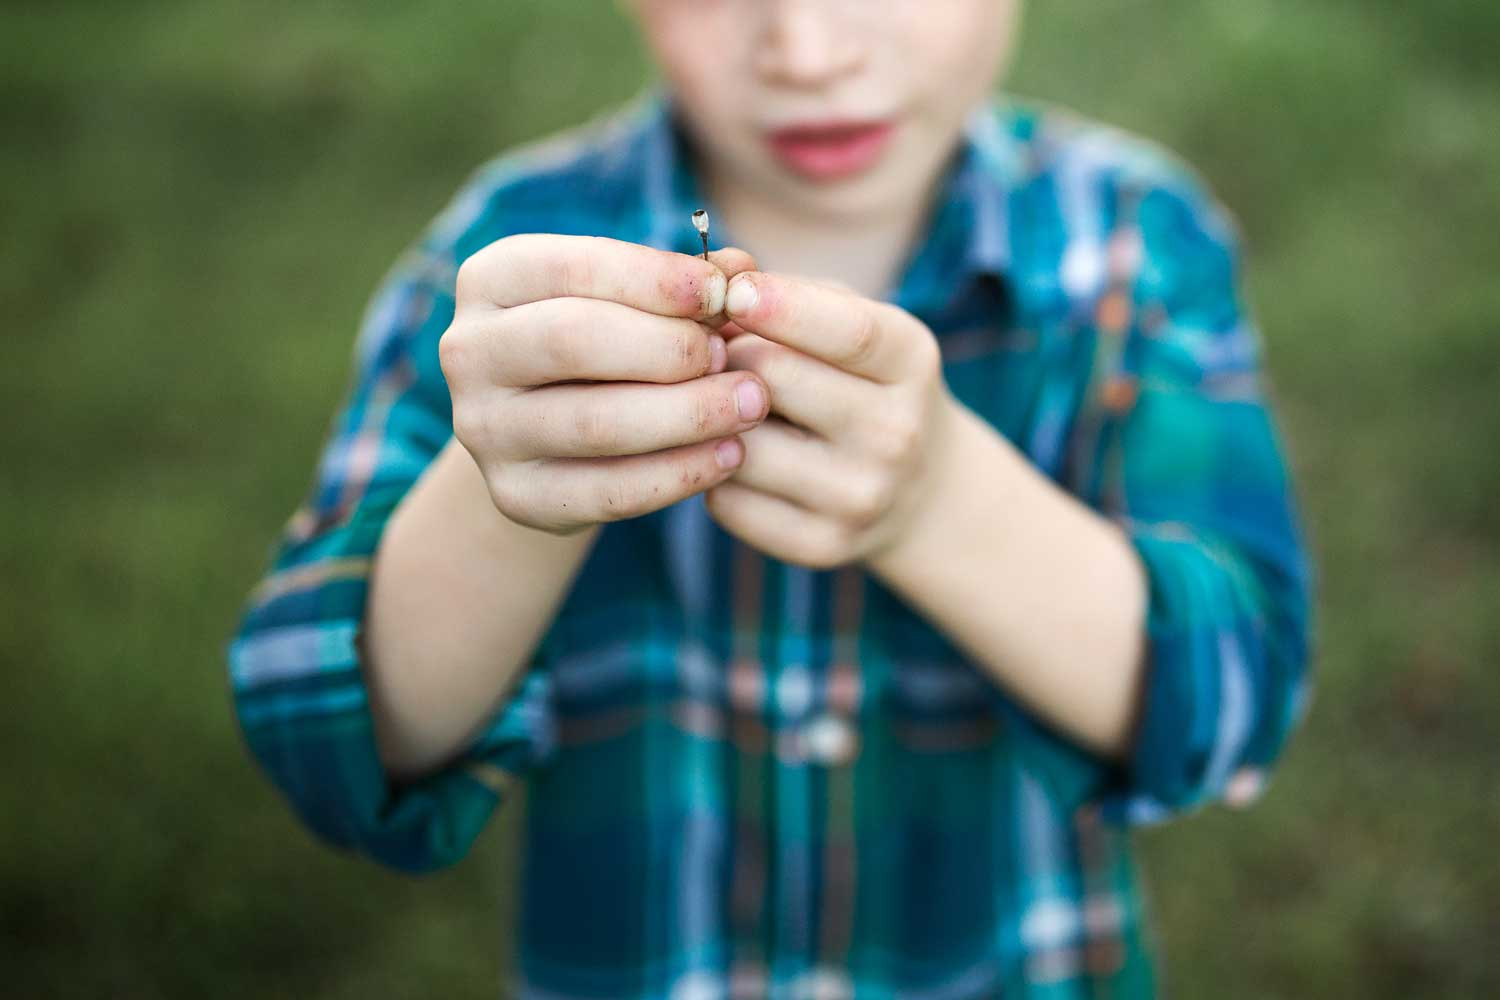 A boy finds some nature treasures in Roseville, California.